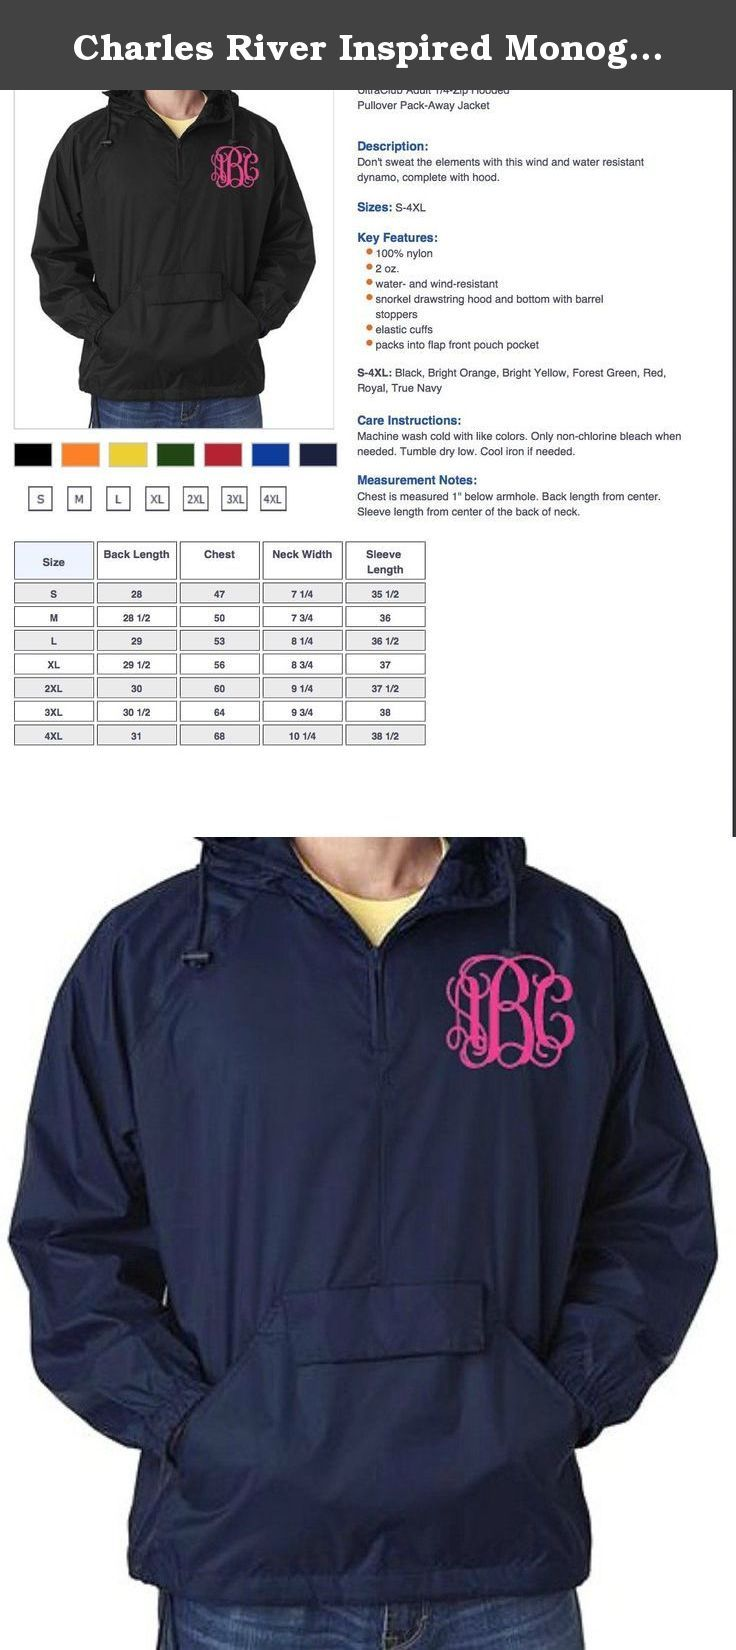 Charles River Inspired Monogrammed Rain Jacket Unisex Size (Small, True Navy). Don't sweat the elements with this wind and water resistant dynamo, complete with hood. Please understand due to personalization returns will not be accepted. Don't hesitate to reach out to me with any/all questions. Thank you!.